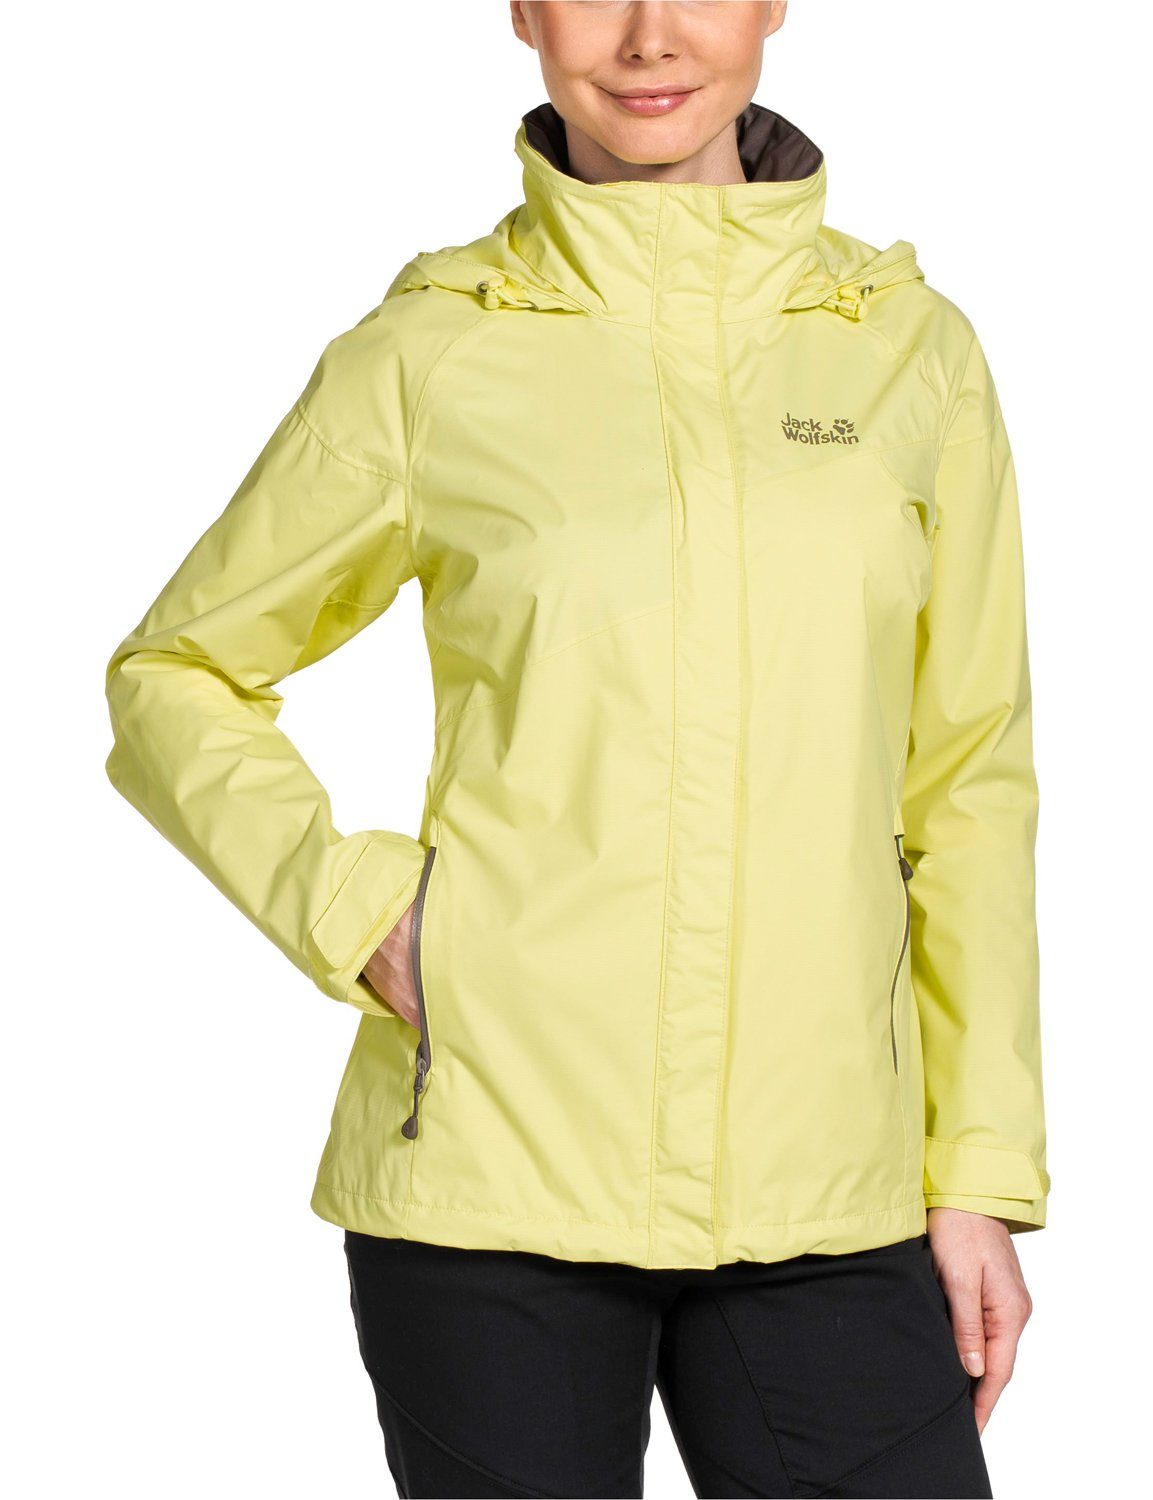 Jack Wolfskin, Giacca a vento Donna Supercell Texapore, Giallo (Lemonade), XL